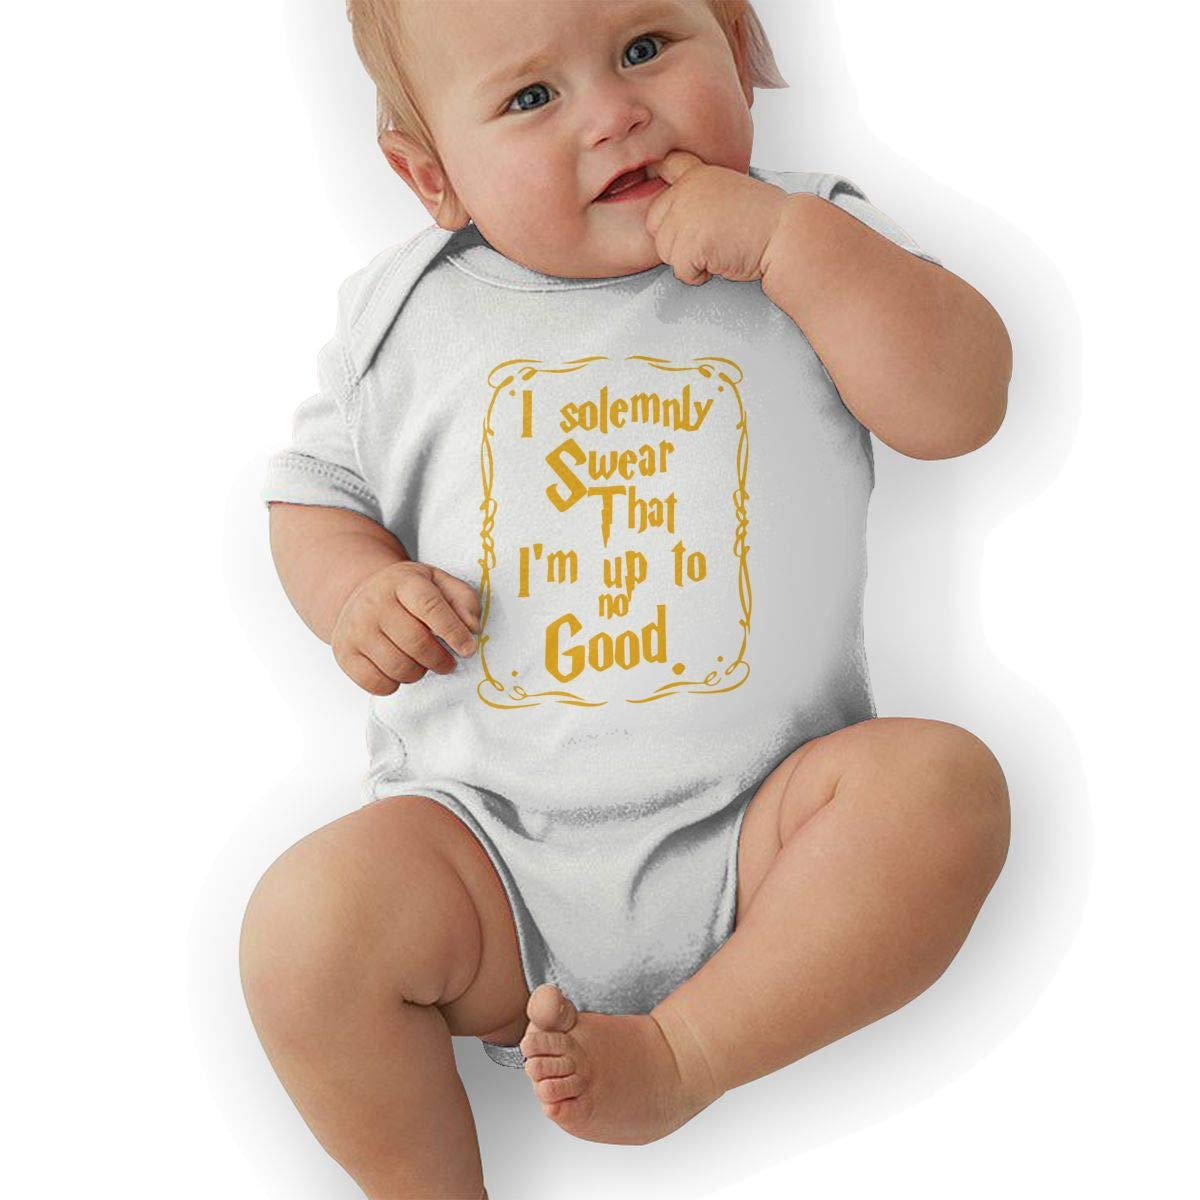 Im Up to No Good Baby Boys Girls Jumpsuits Short Sleeve Romper Bodysuit Bodysuit Jumpsuit Outfits White